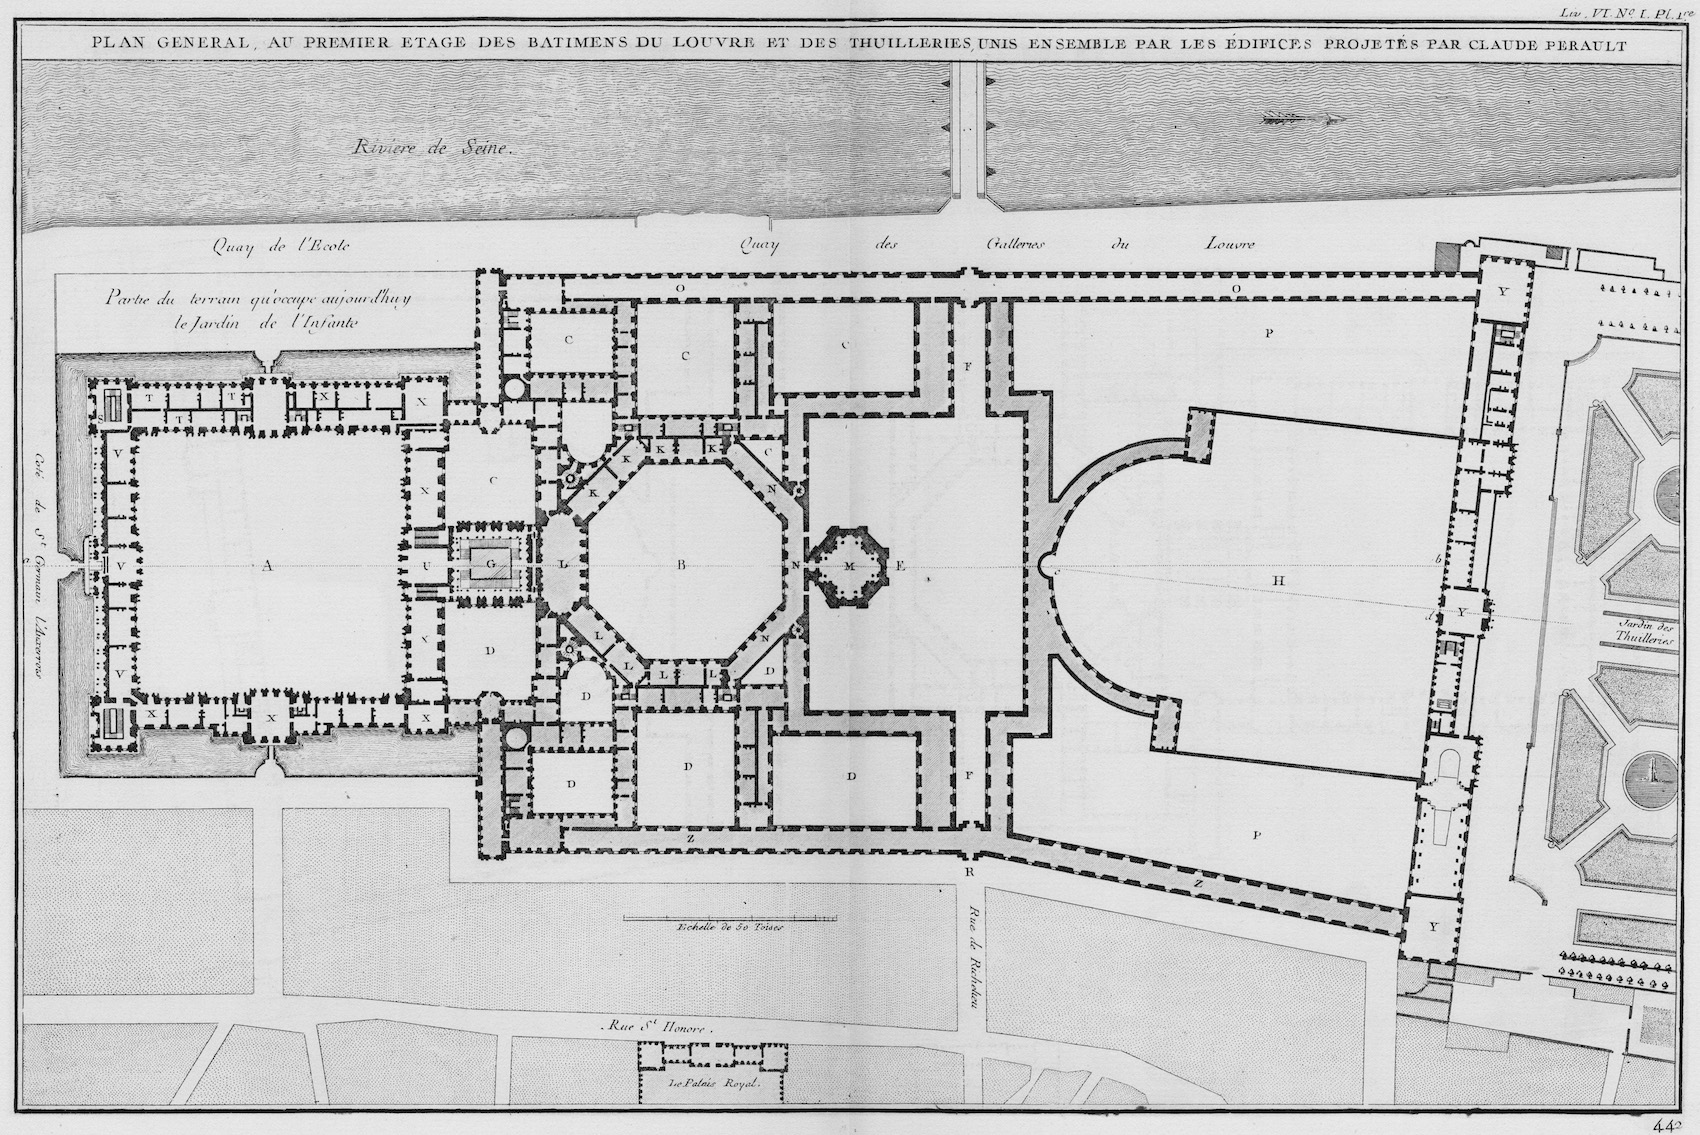 A Plan Of The Louvre S Cour Carrée And The Making Of The Architecture Française Journal18 A Journal Of Eighteenth Century Art And Culture